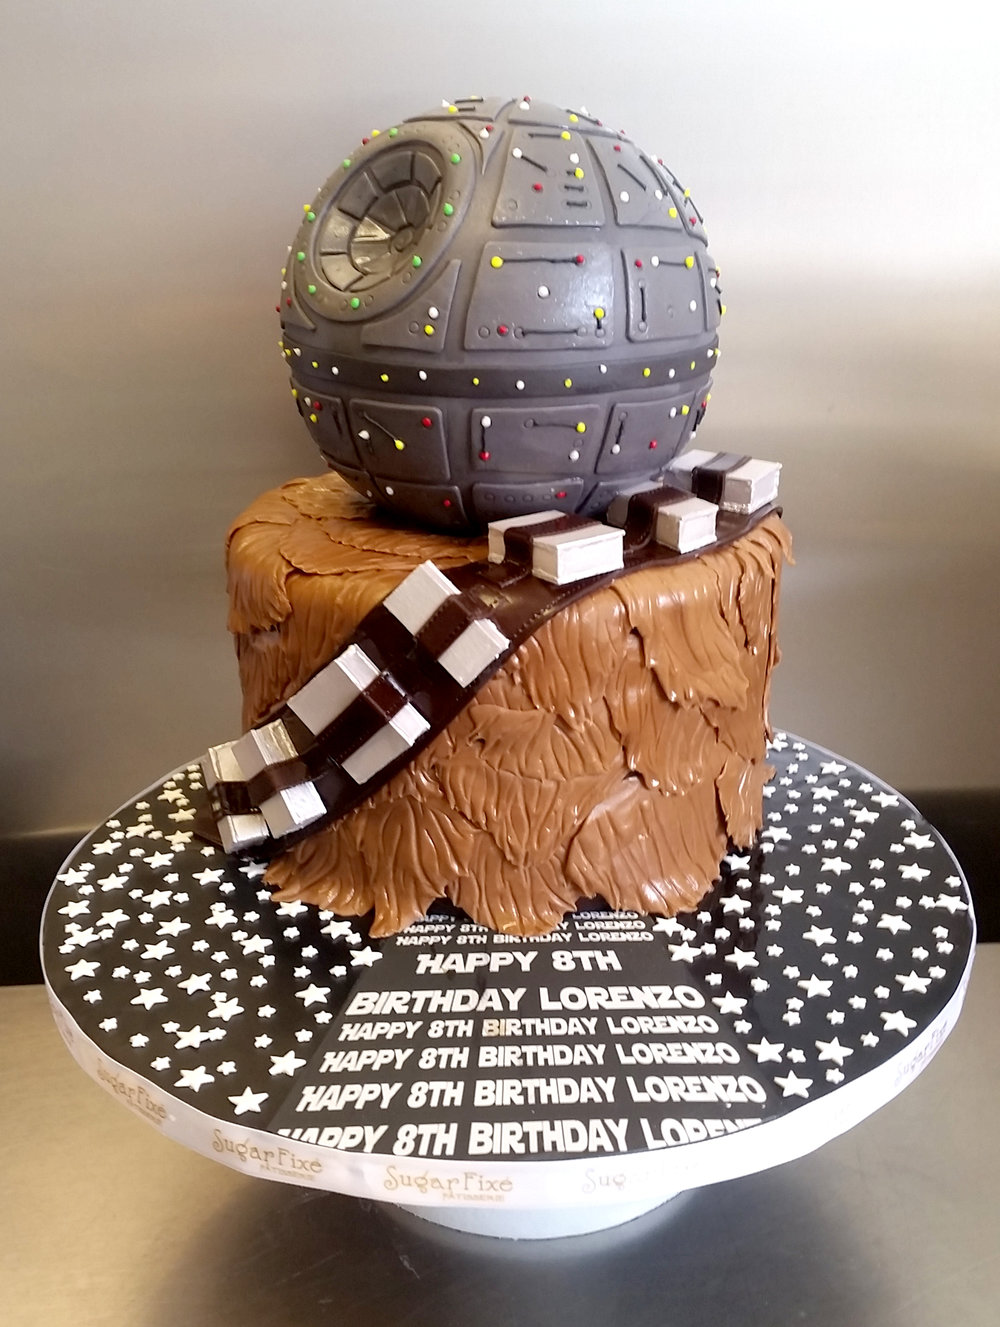 Star Wars Sculpted Cake.jpg